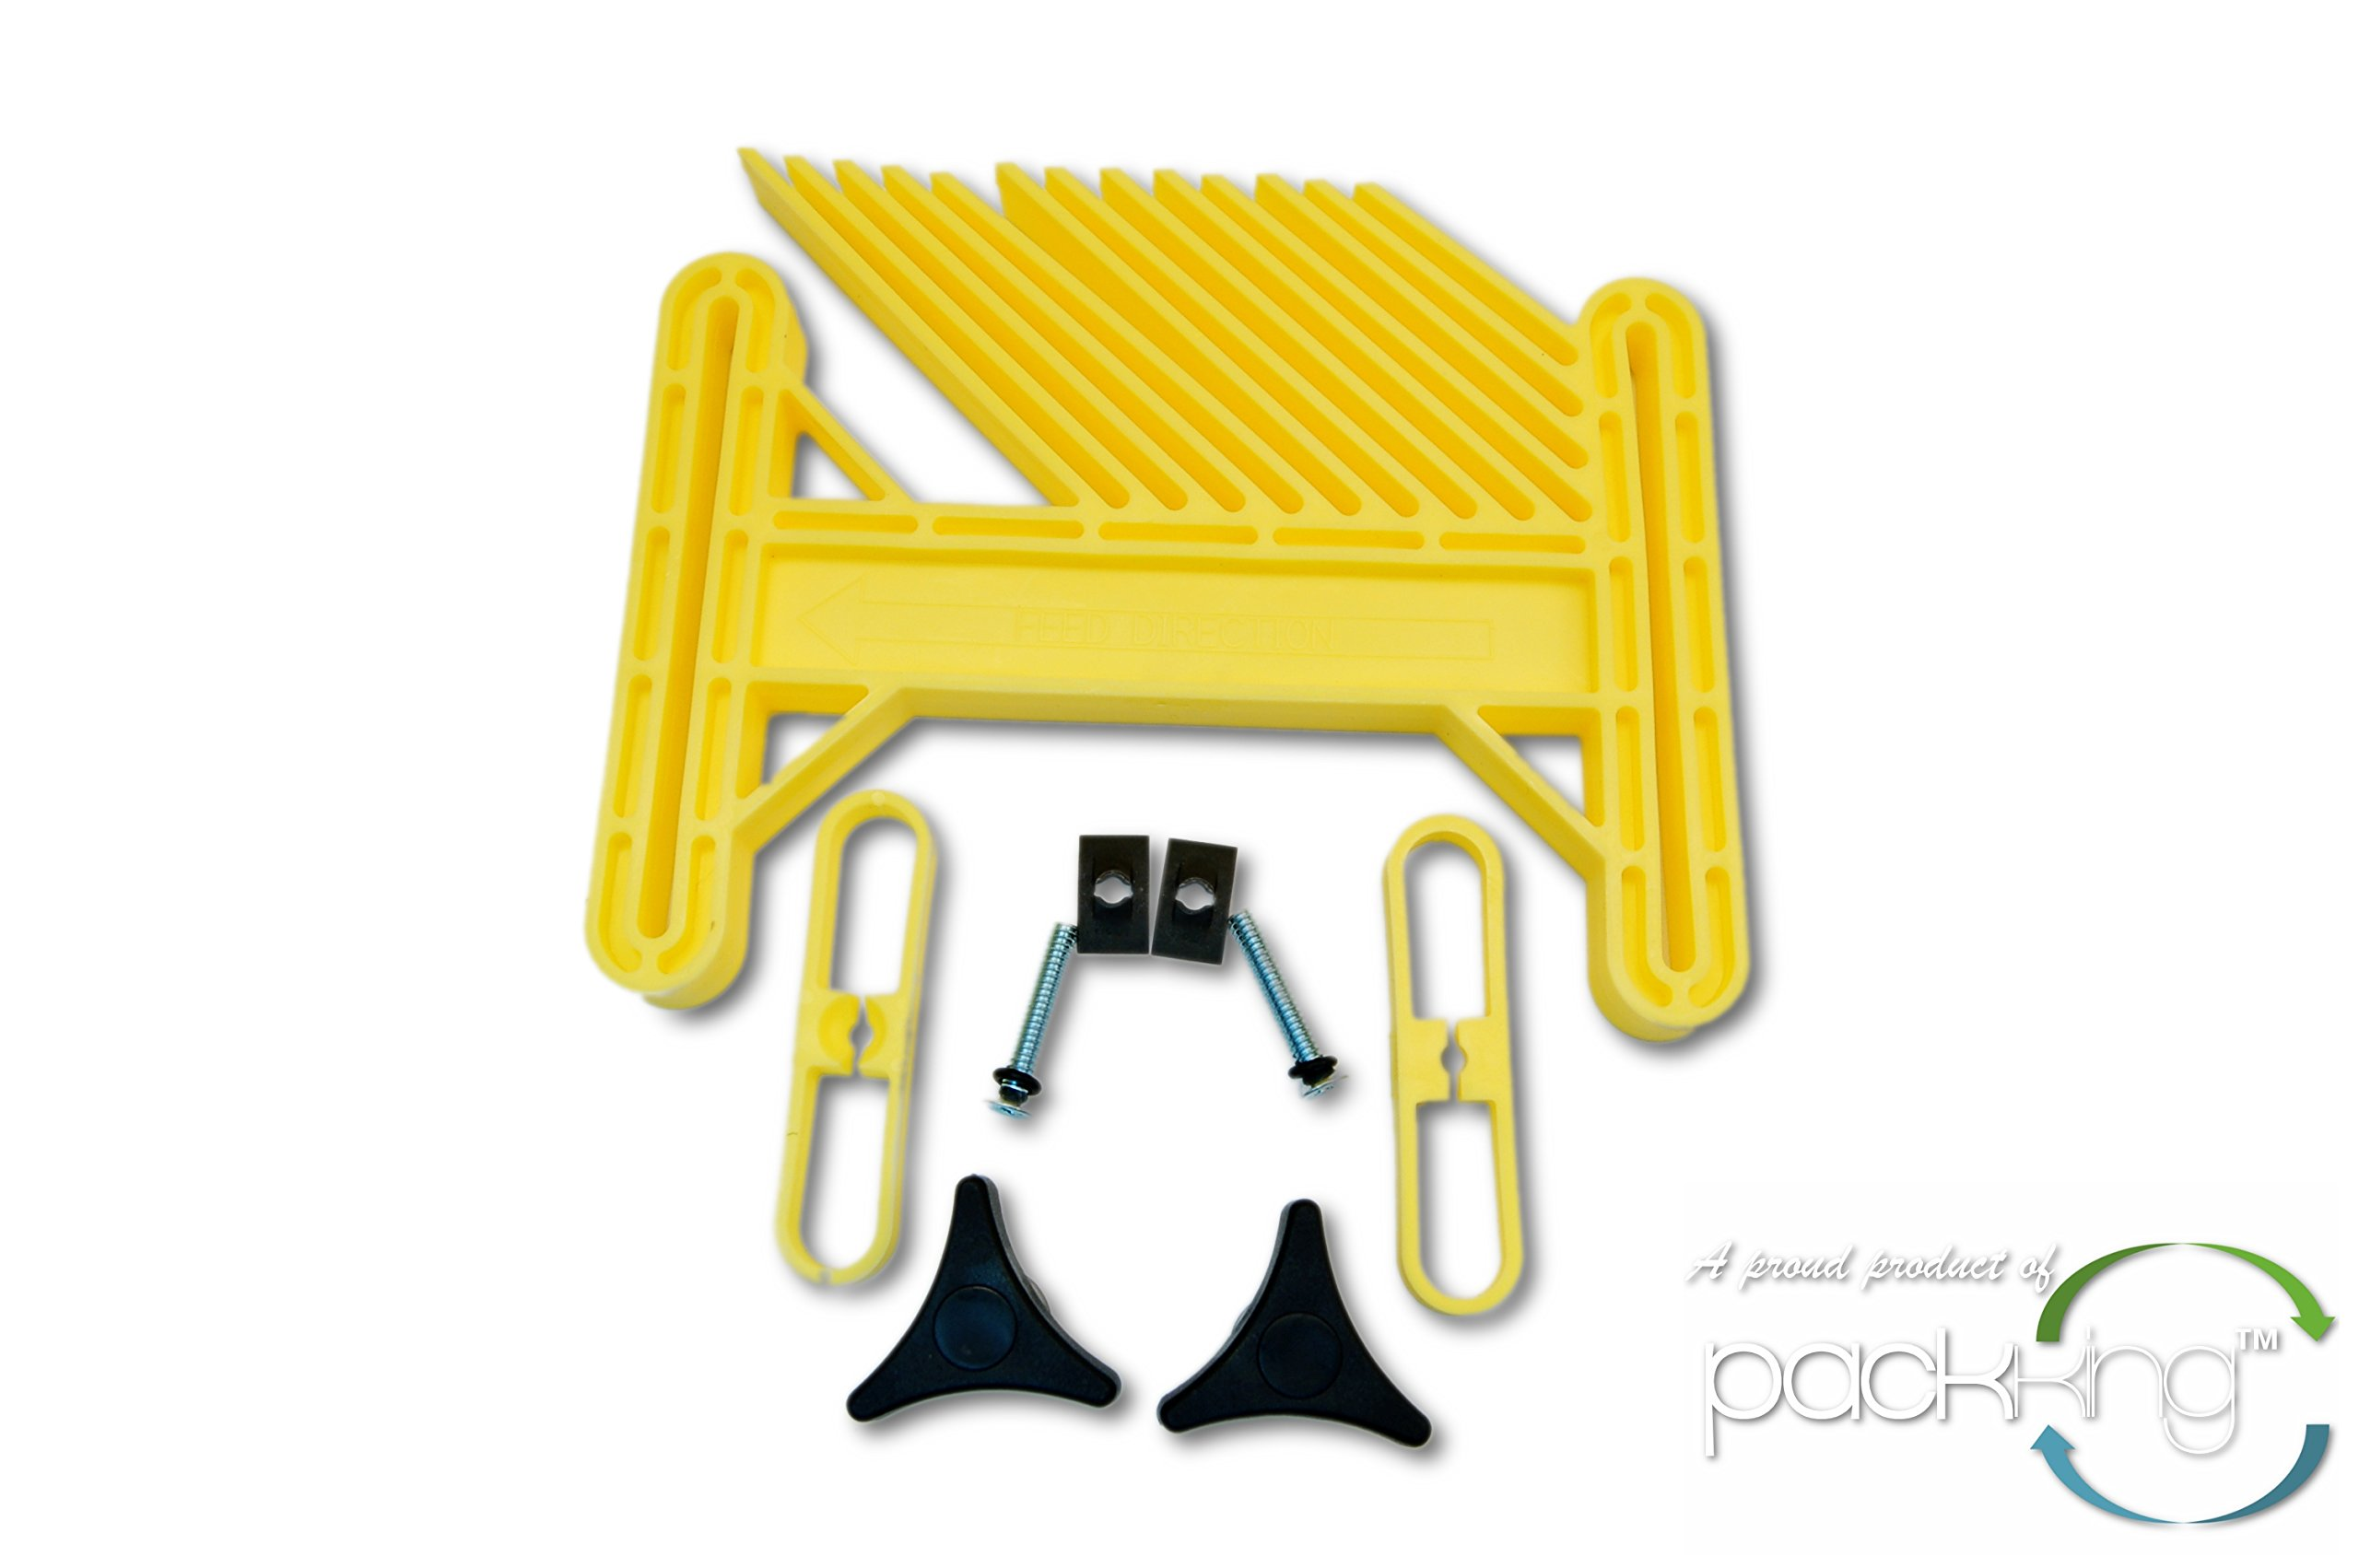 Big Horn 10215C - Deluxe Featherboard for Table Saw, Router Table, Shaper - Safety Yellow